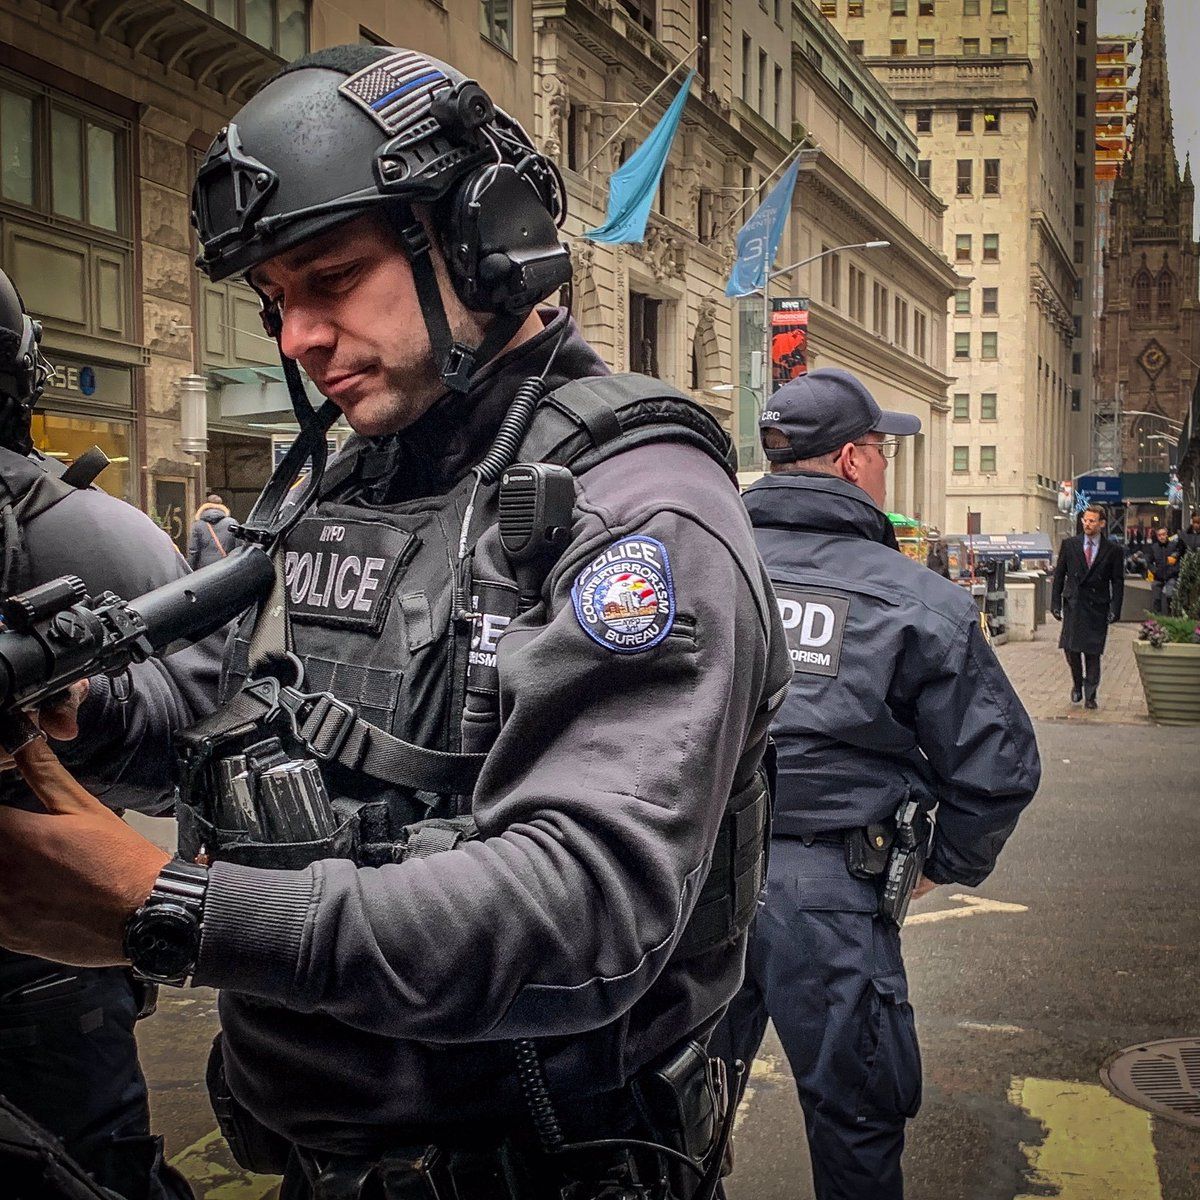 Our @NYPDCT officers are deployed every day to various areas of the five boroughs to ensure extra security at some of NYC's most iconic locations. New Yorkers' safety is our top priority, and these officers help ensure that objective is met.